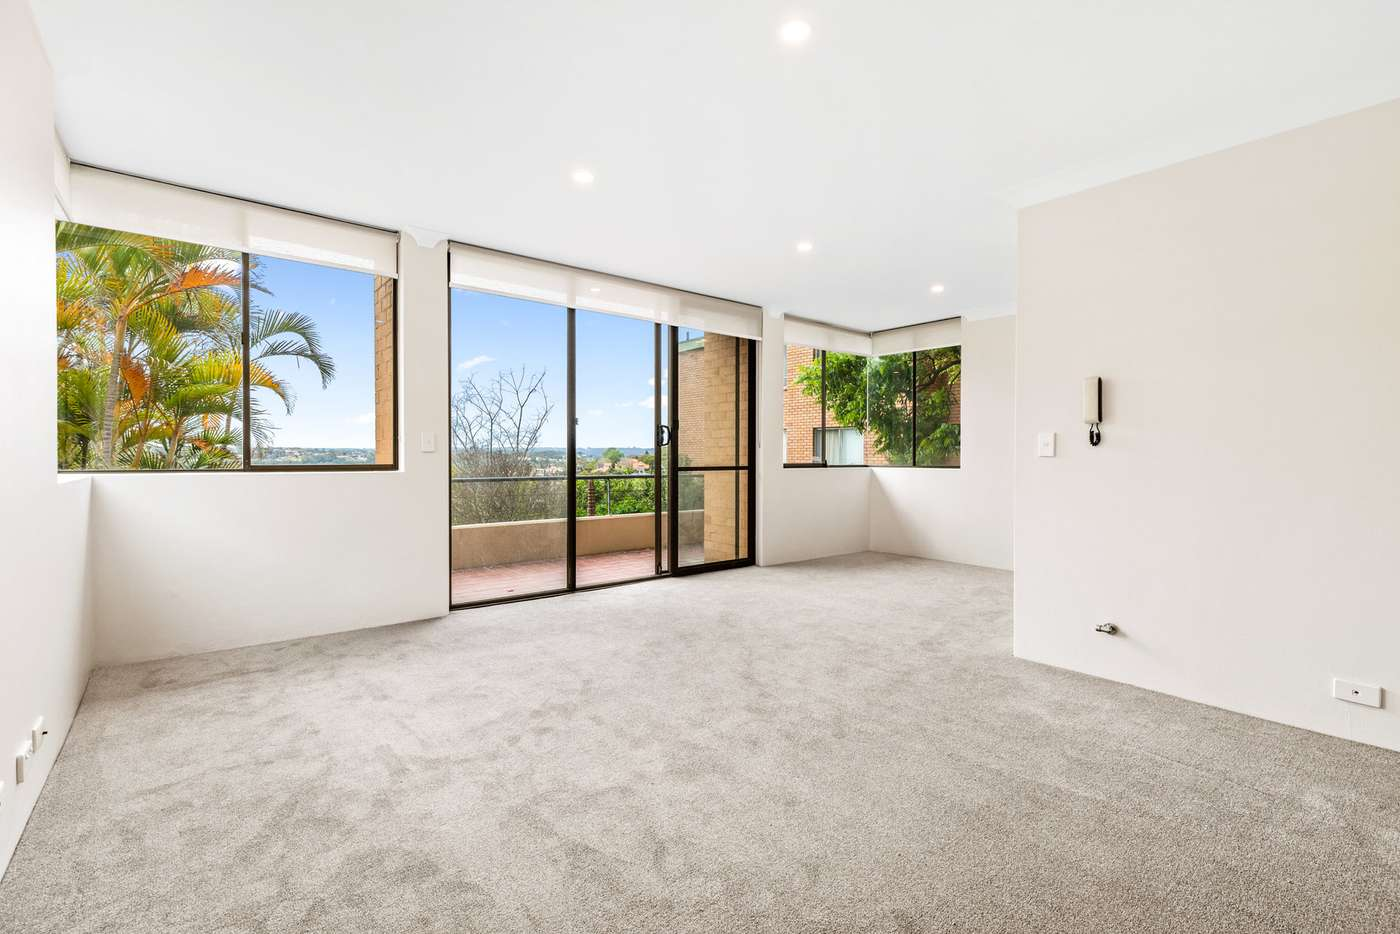 Main view of Homely apartment listing, 15/58 Gerard Street, Cremorne NSW 2090